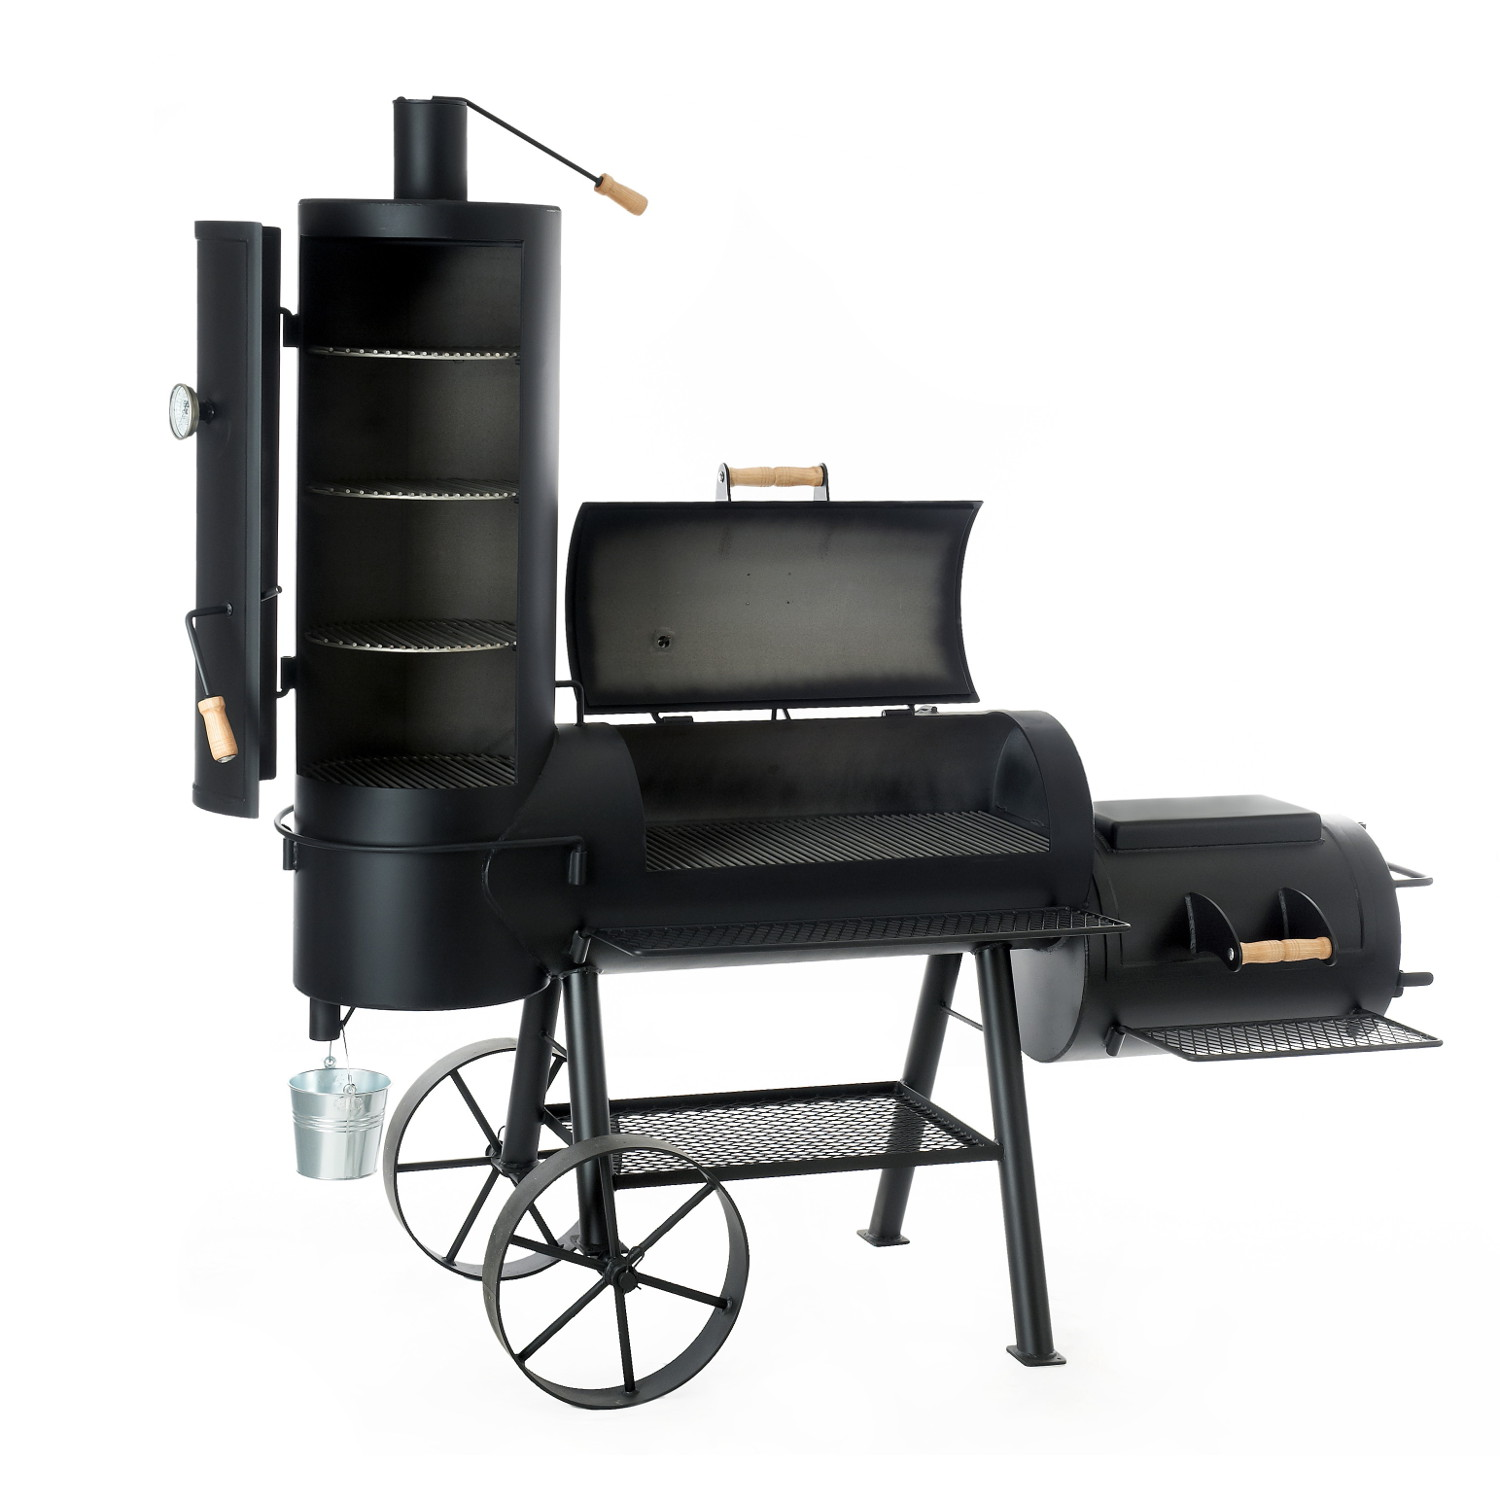 joe 39 s bbq smoker das original 16 chuckwagon online kaufen grilljack ch. Black Bedroom Furniture Sets. Home Design Ideas